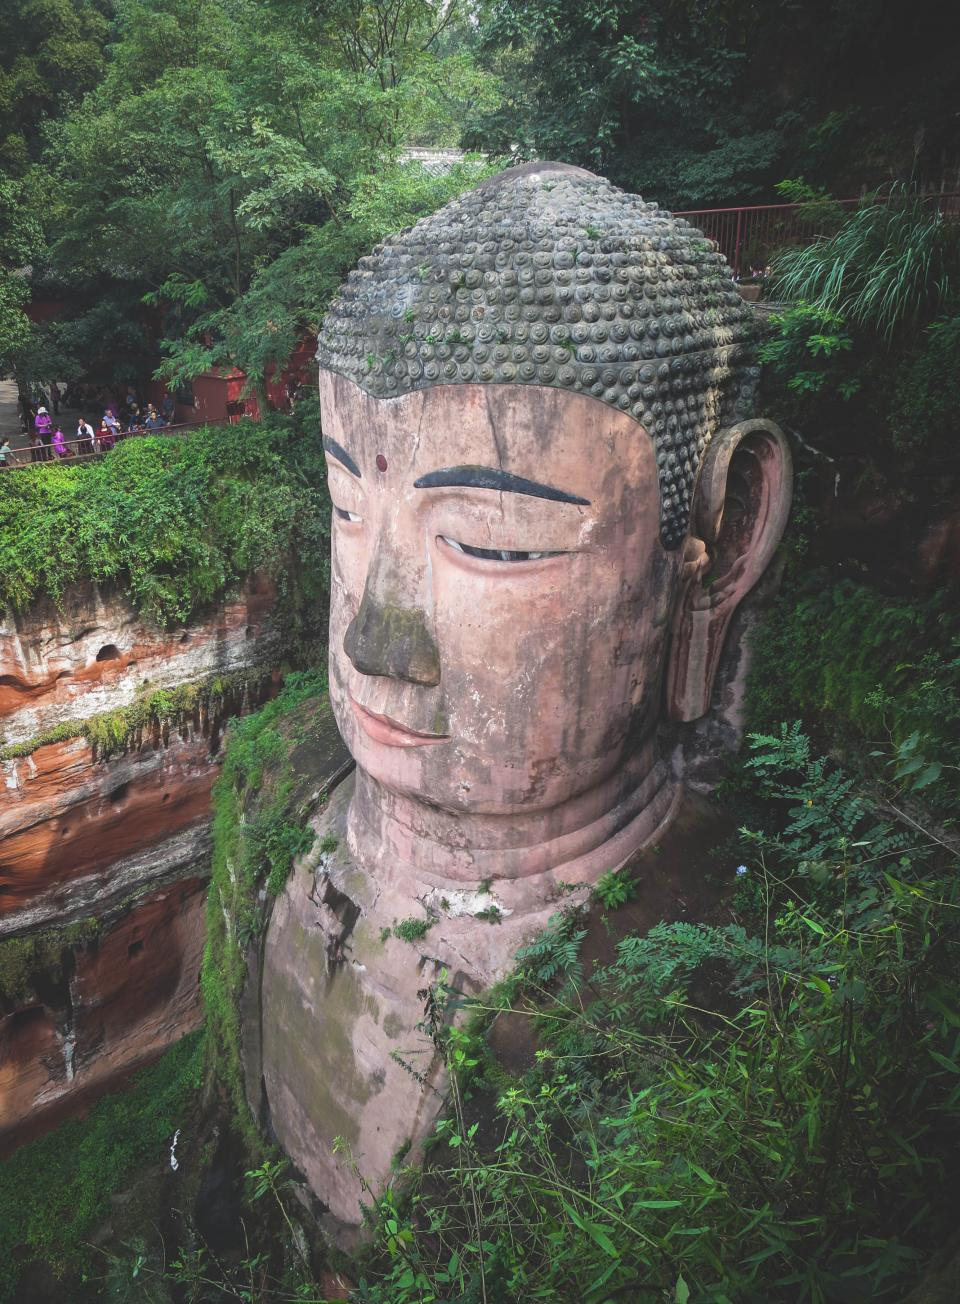 Leshan Giant Buddha culture statue people tourists plants leaves Sichuan China Buddhism Buddhist